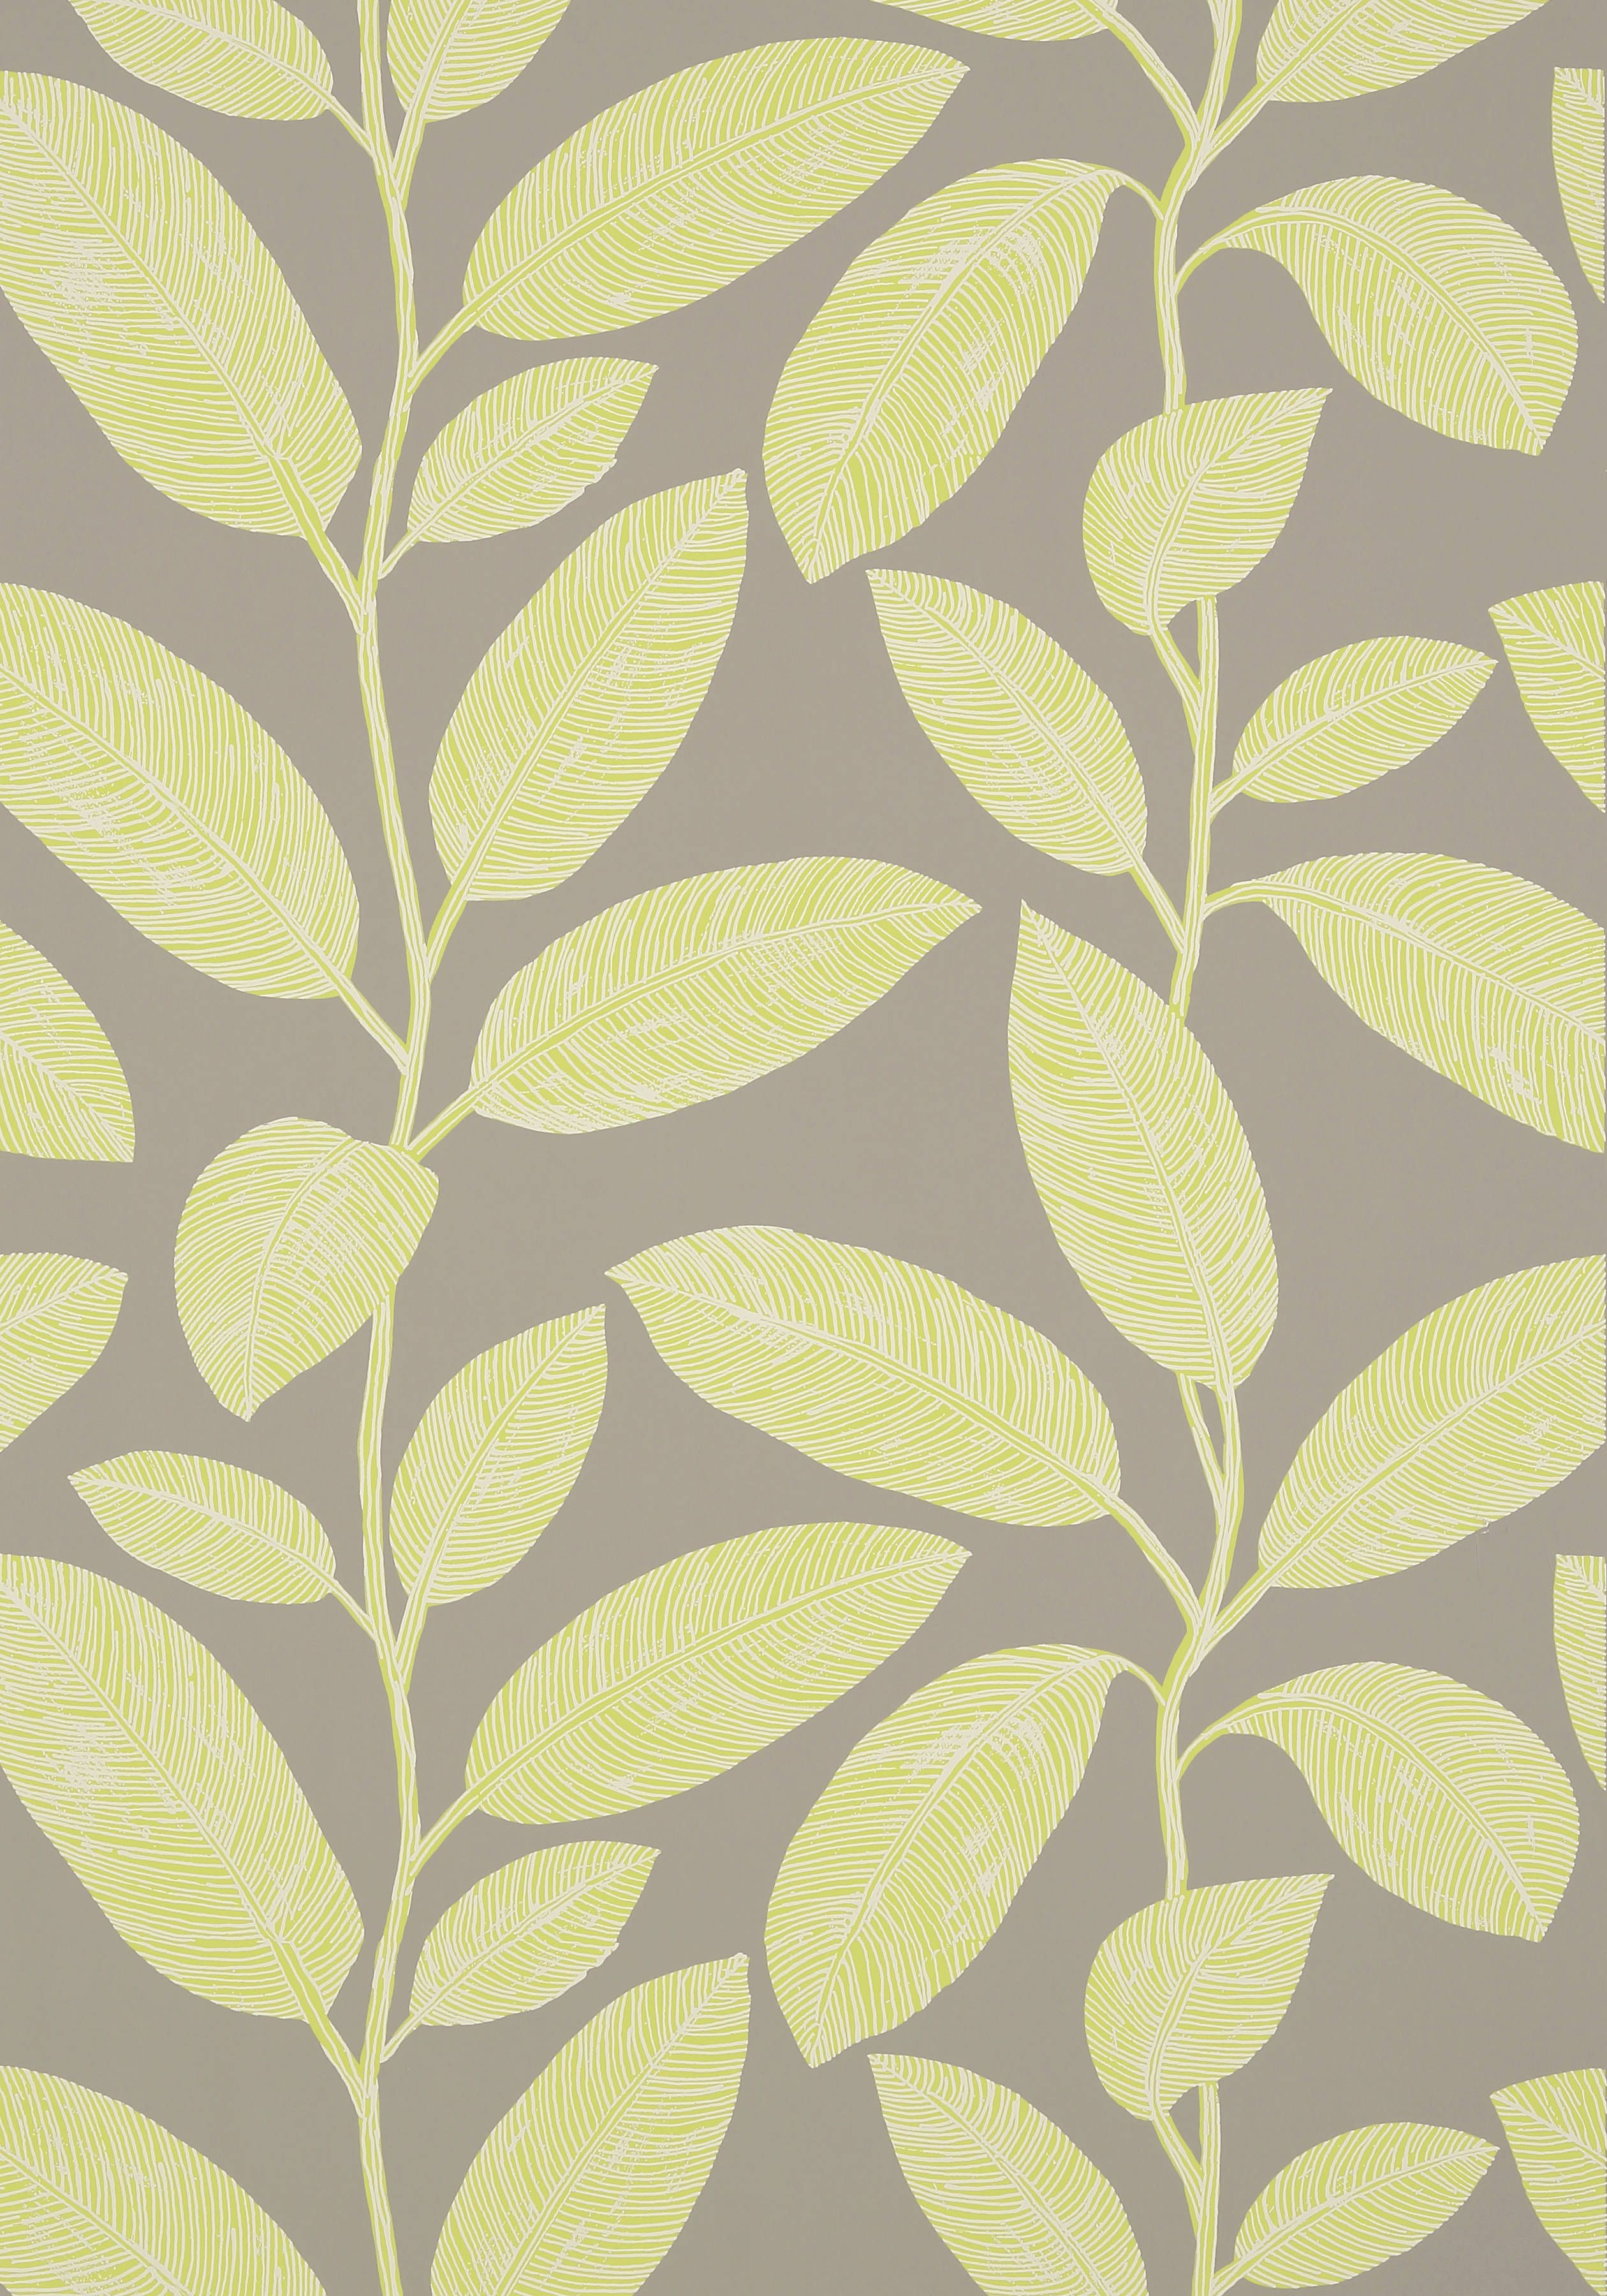 KOMODO LEAVES, Grey and Green, T5713, Collection Biscayne from Thibaut